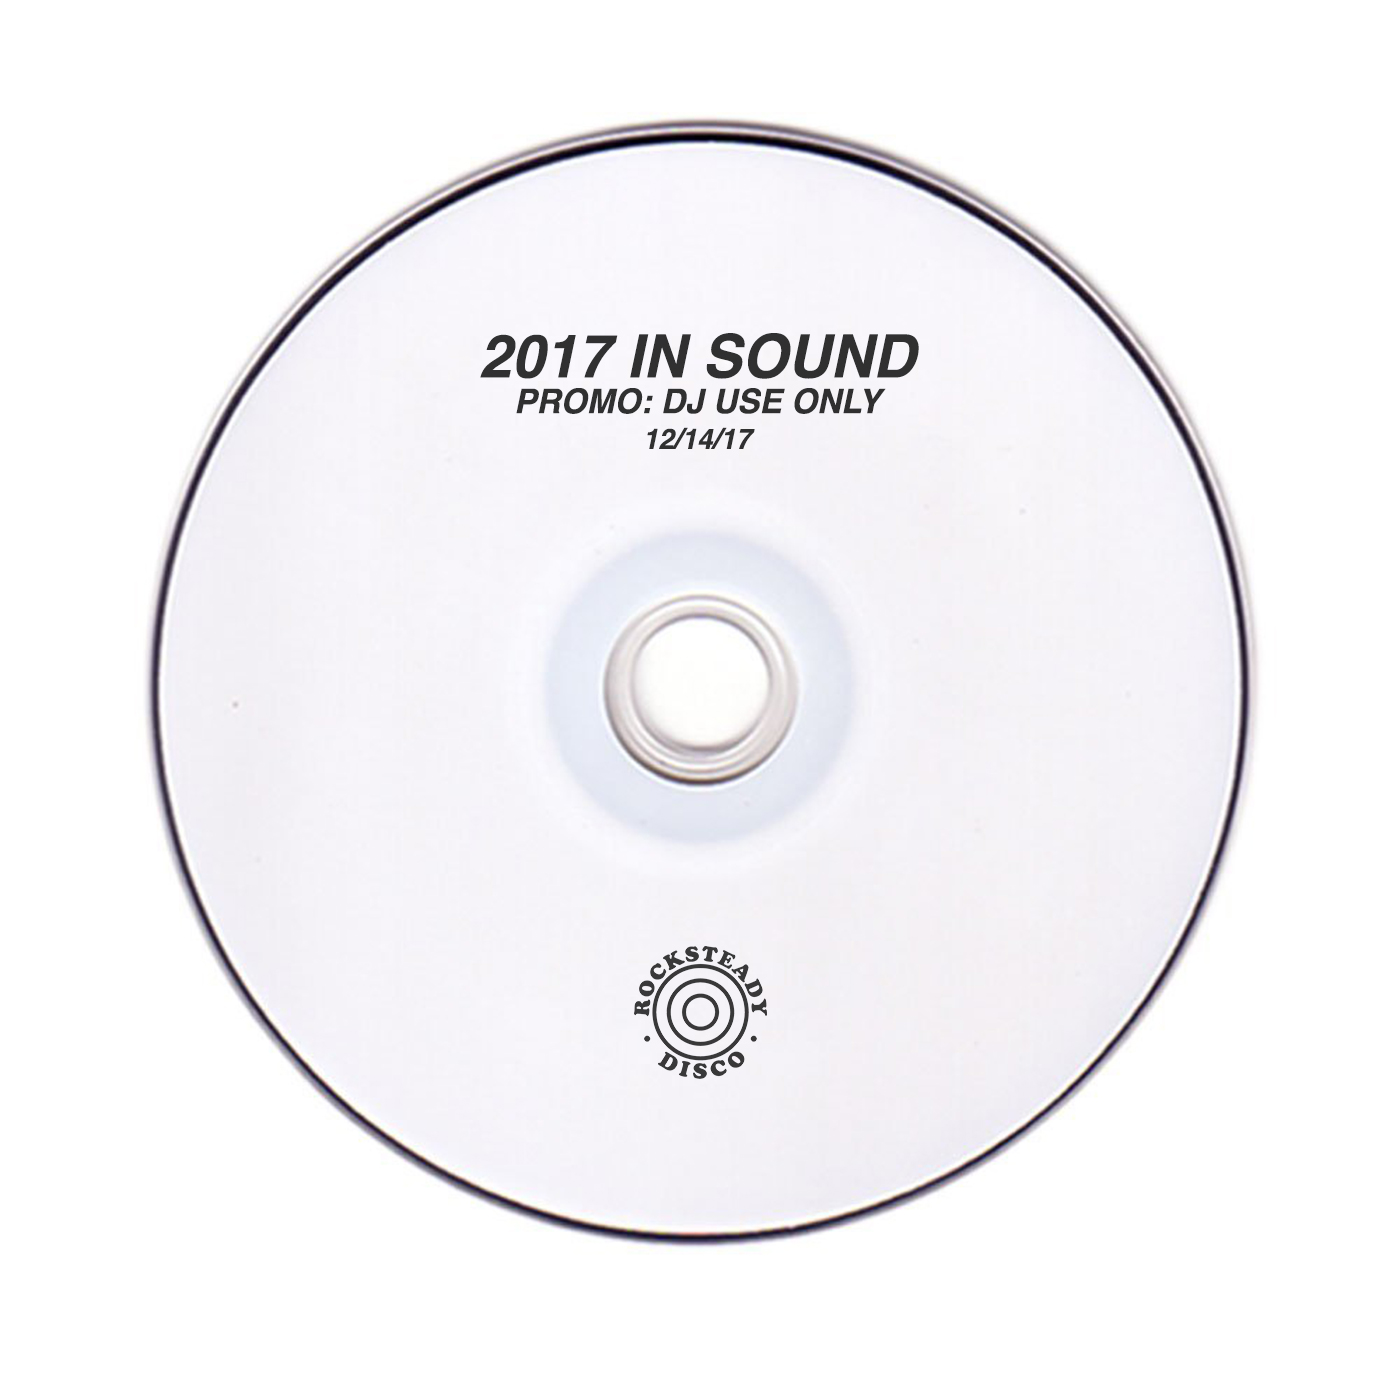 2017 IN SOUND